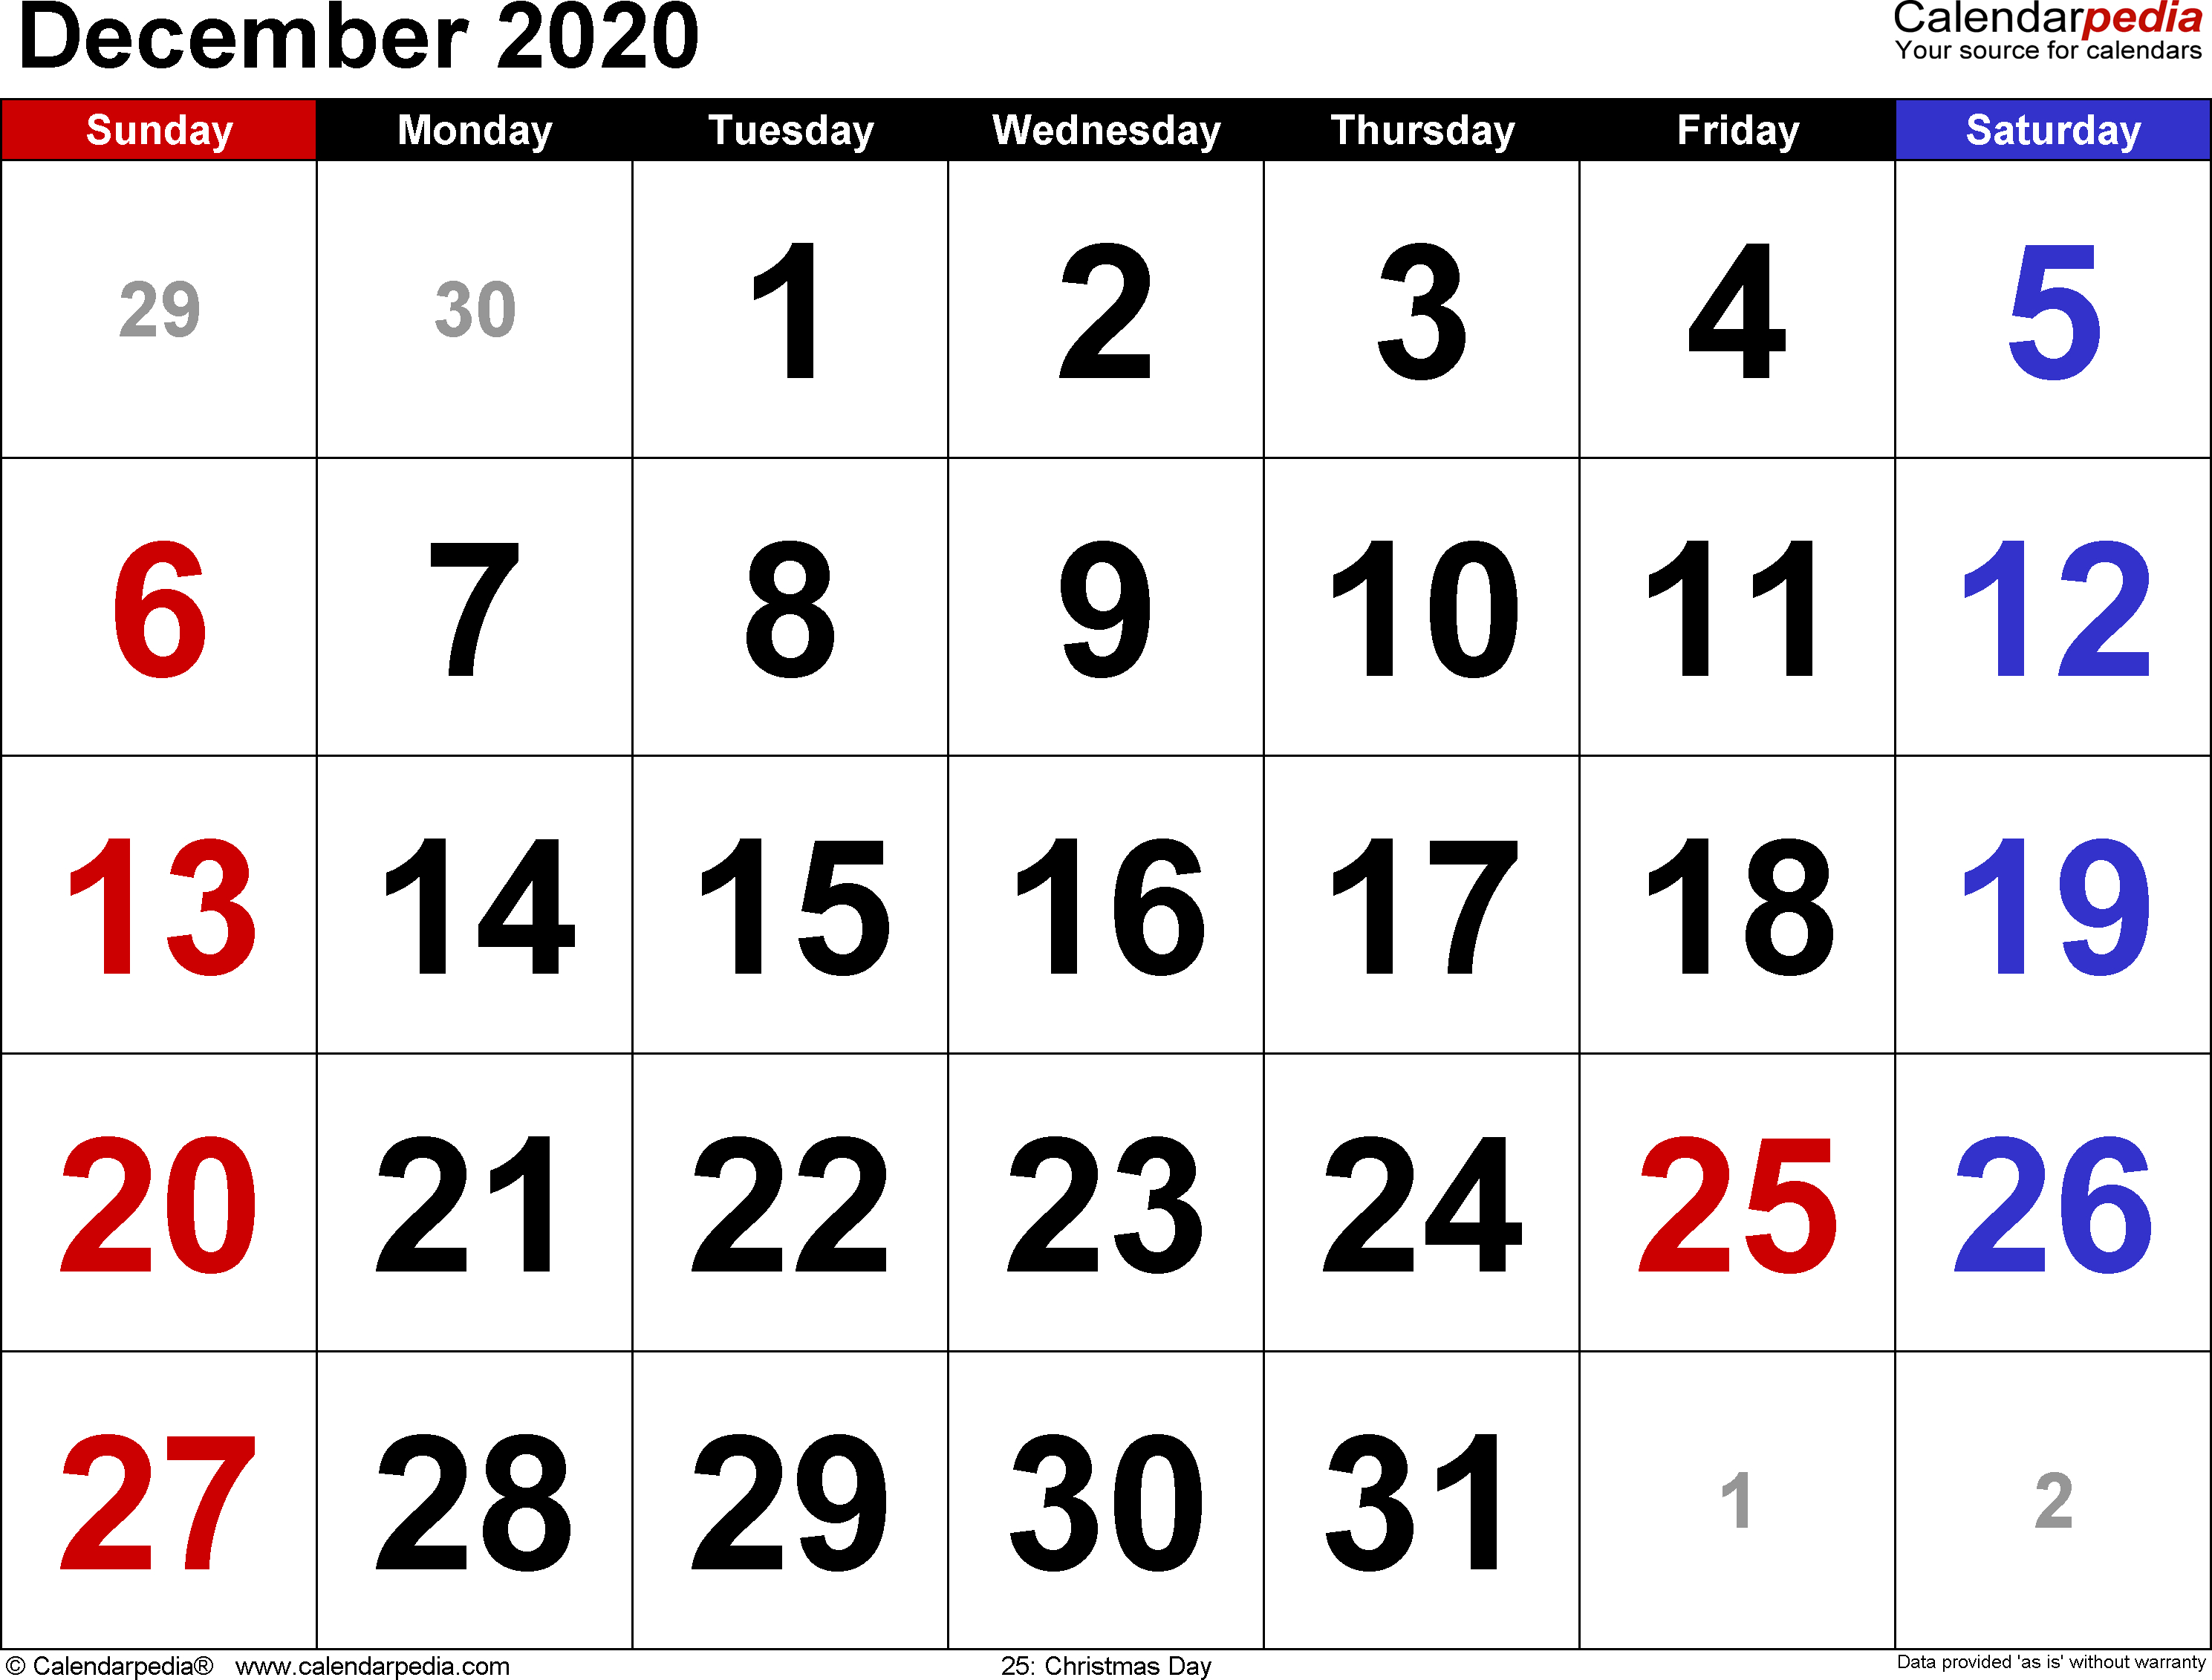 December 2020 Calendars For Word, Excel & Pdf